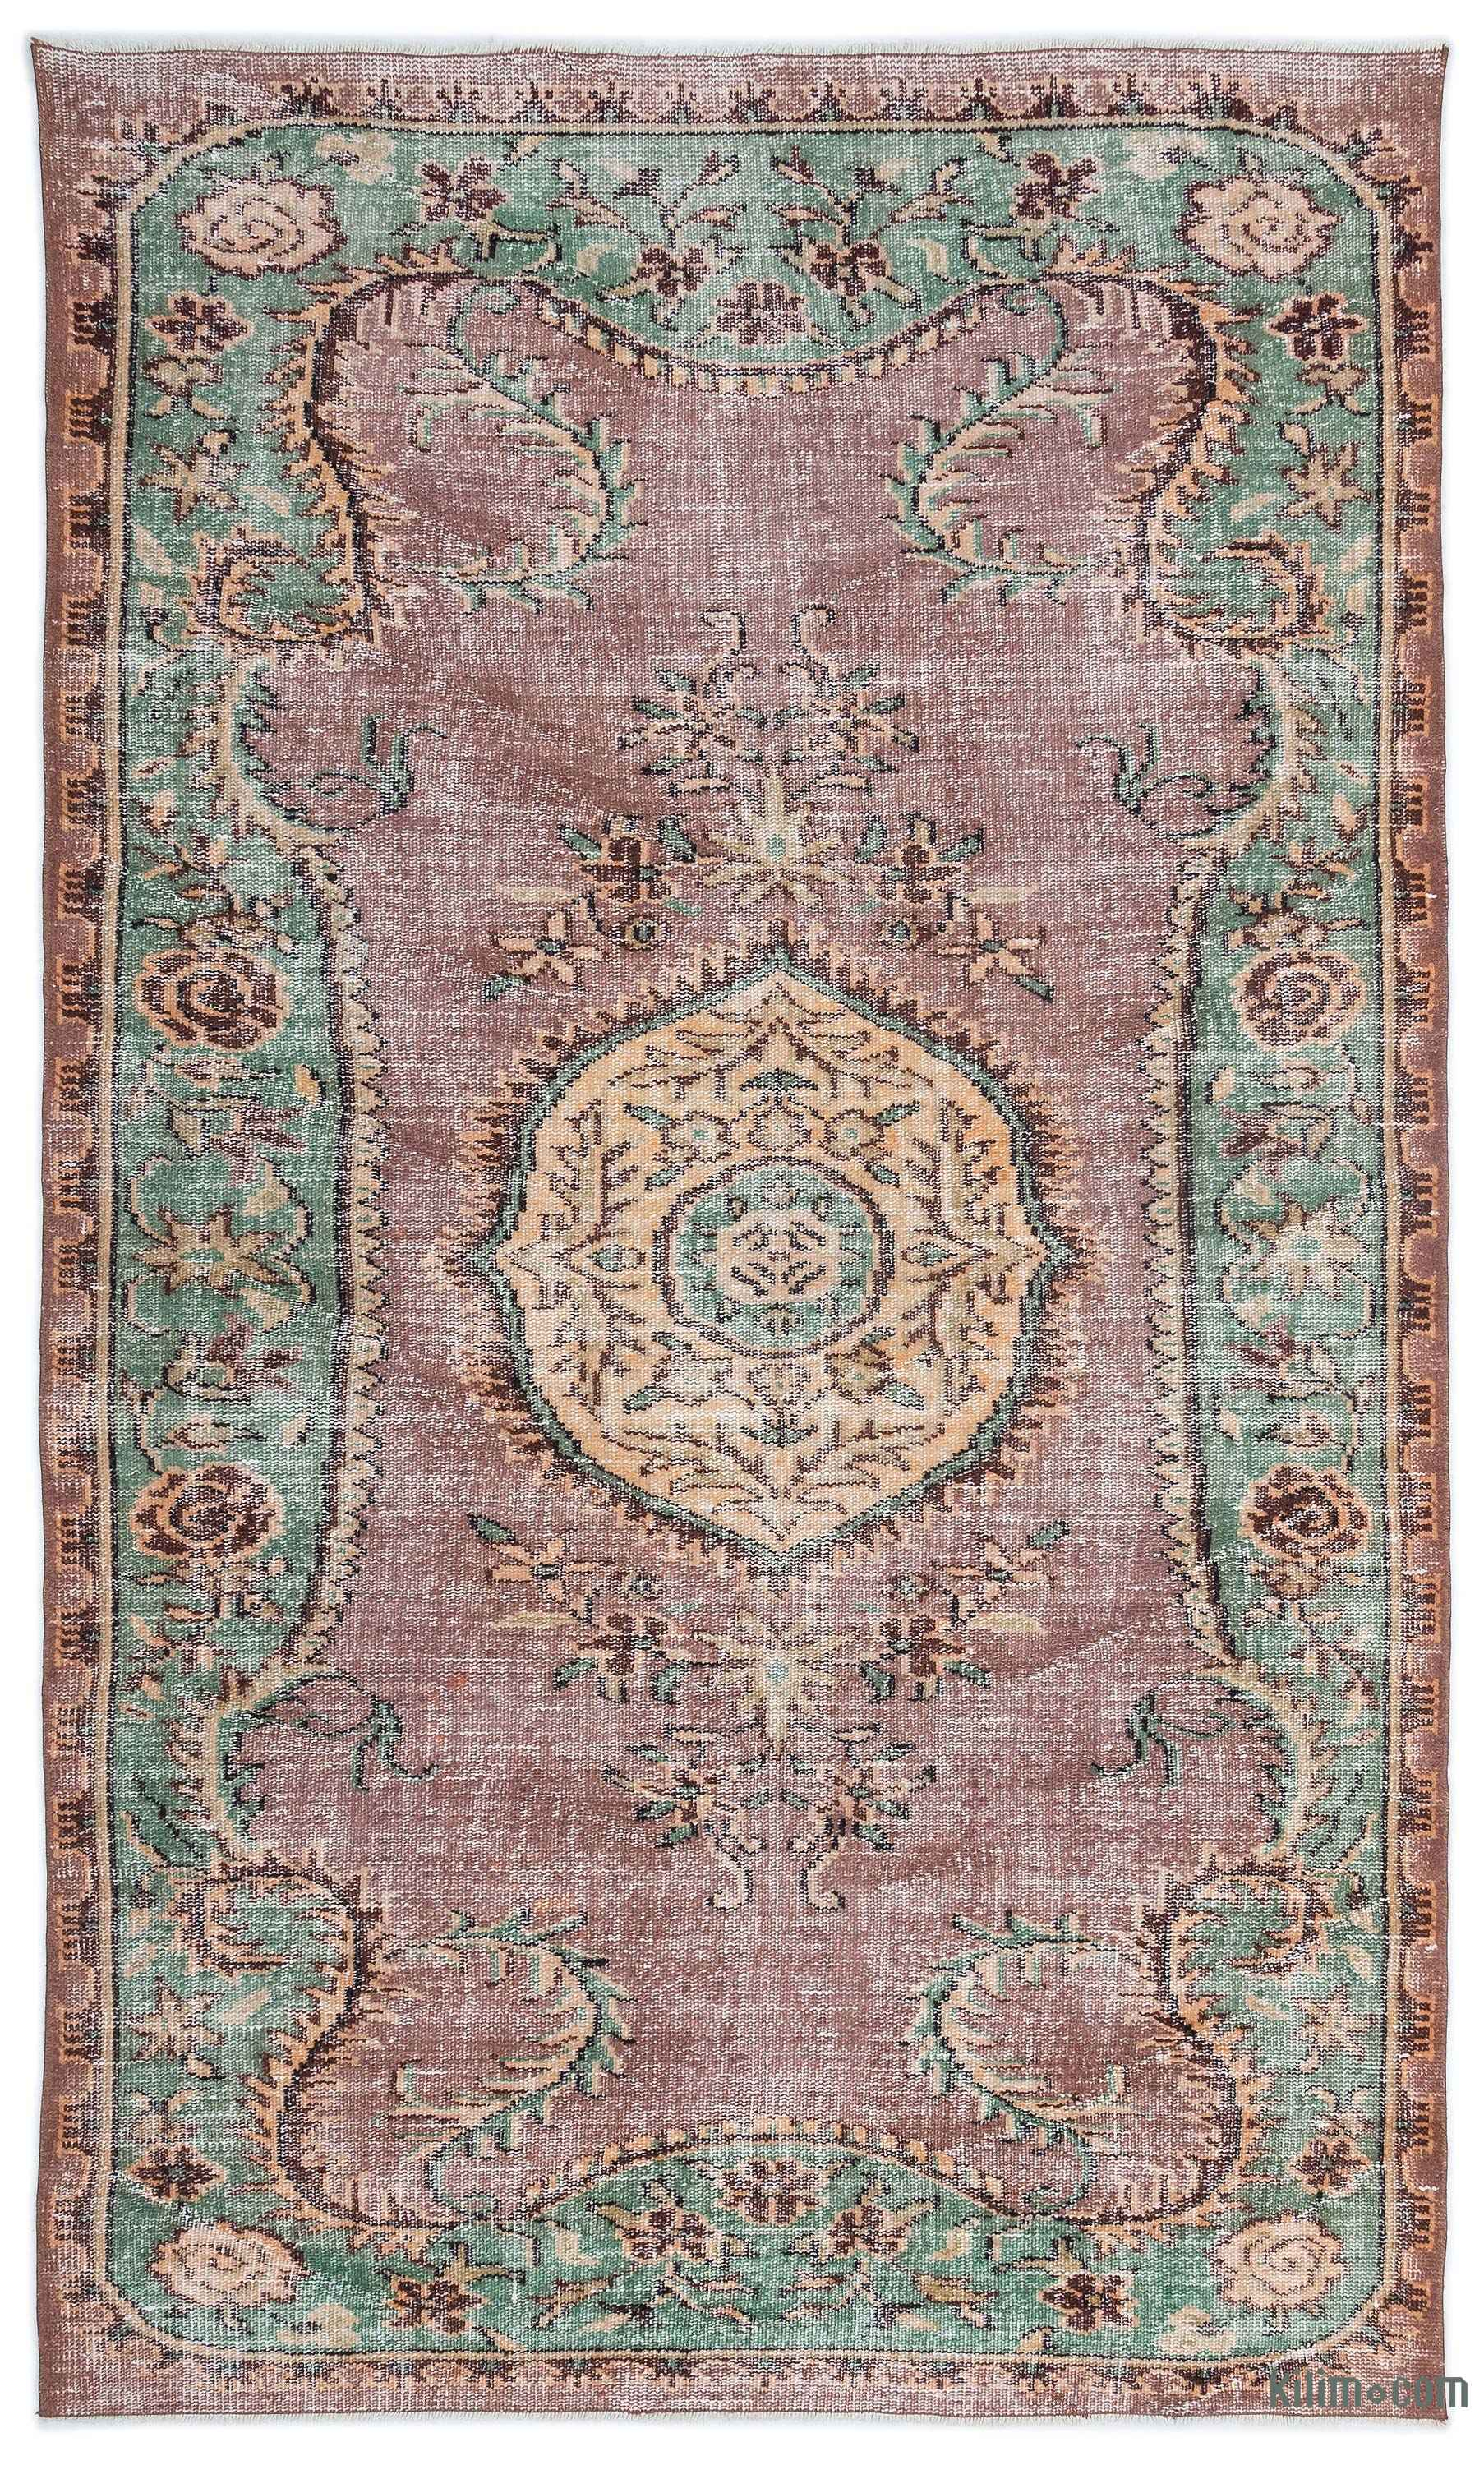 K0019165 Turkish Vintage Rug 5 5 X 8 10 65 In X